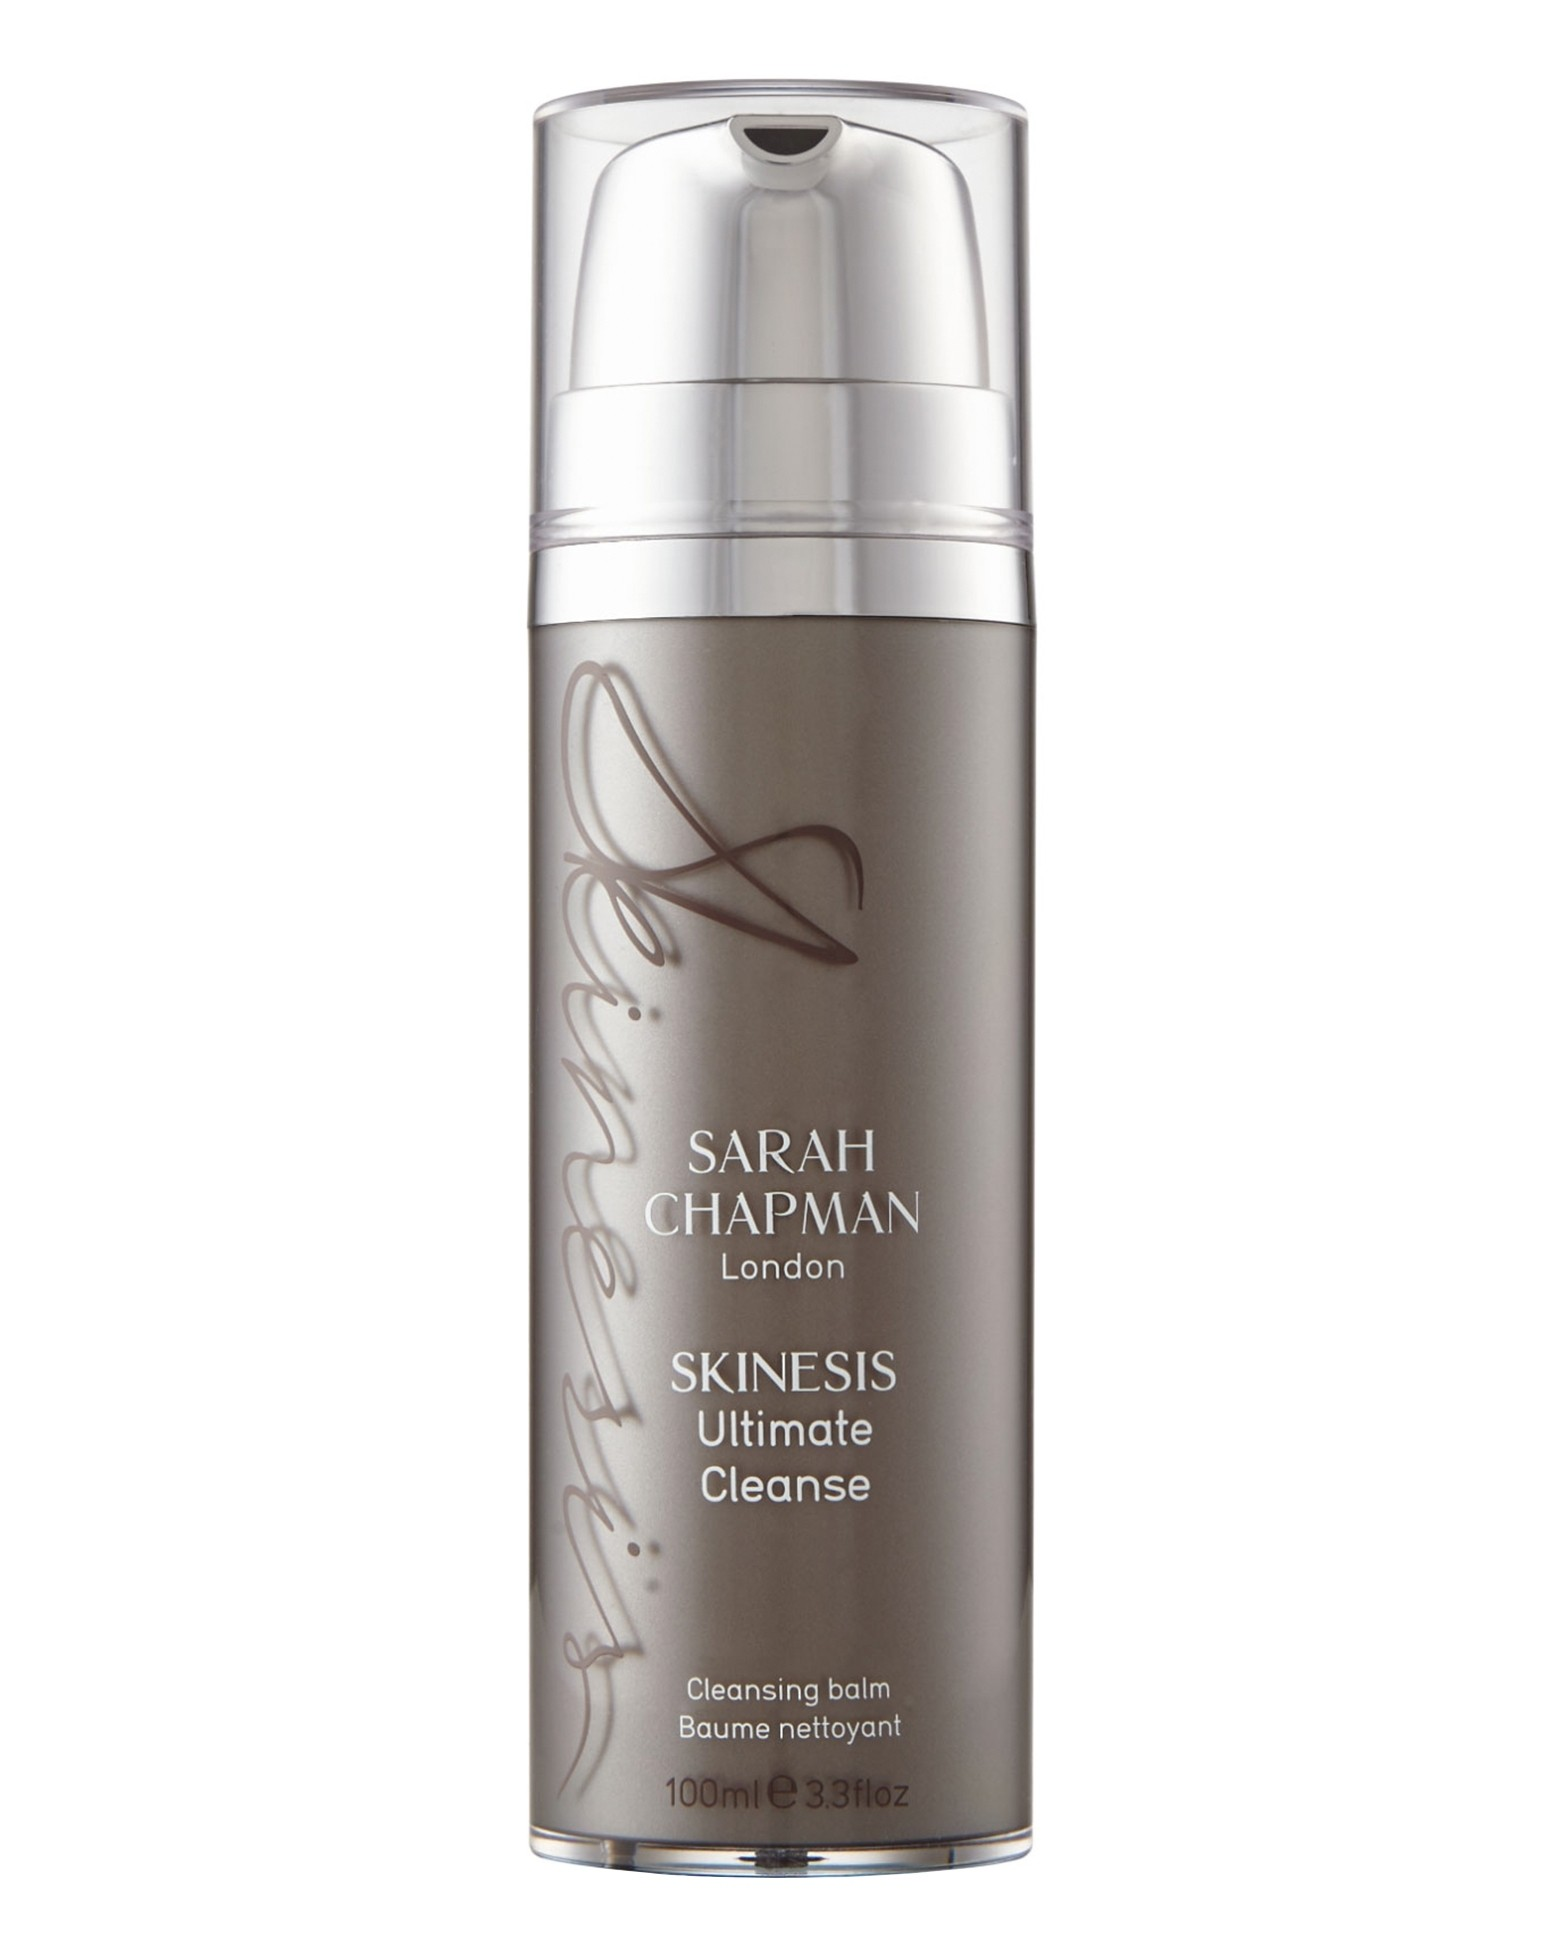 Sarah Chapman Skinesis Ultimate Cleanse 100ml